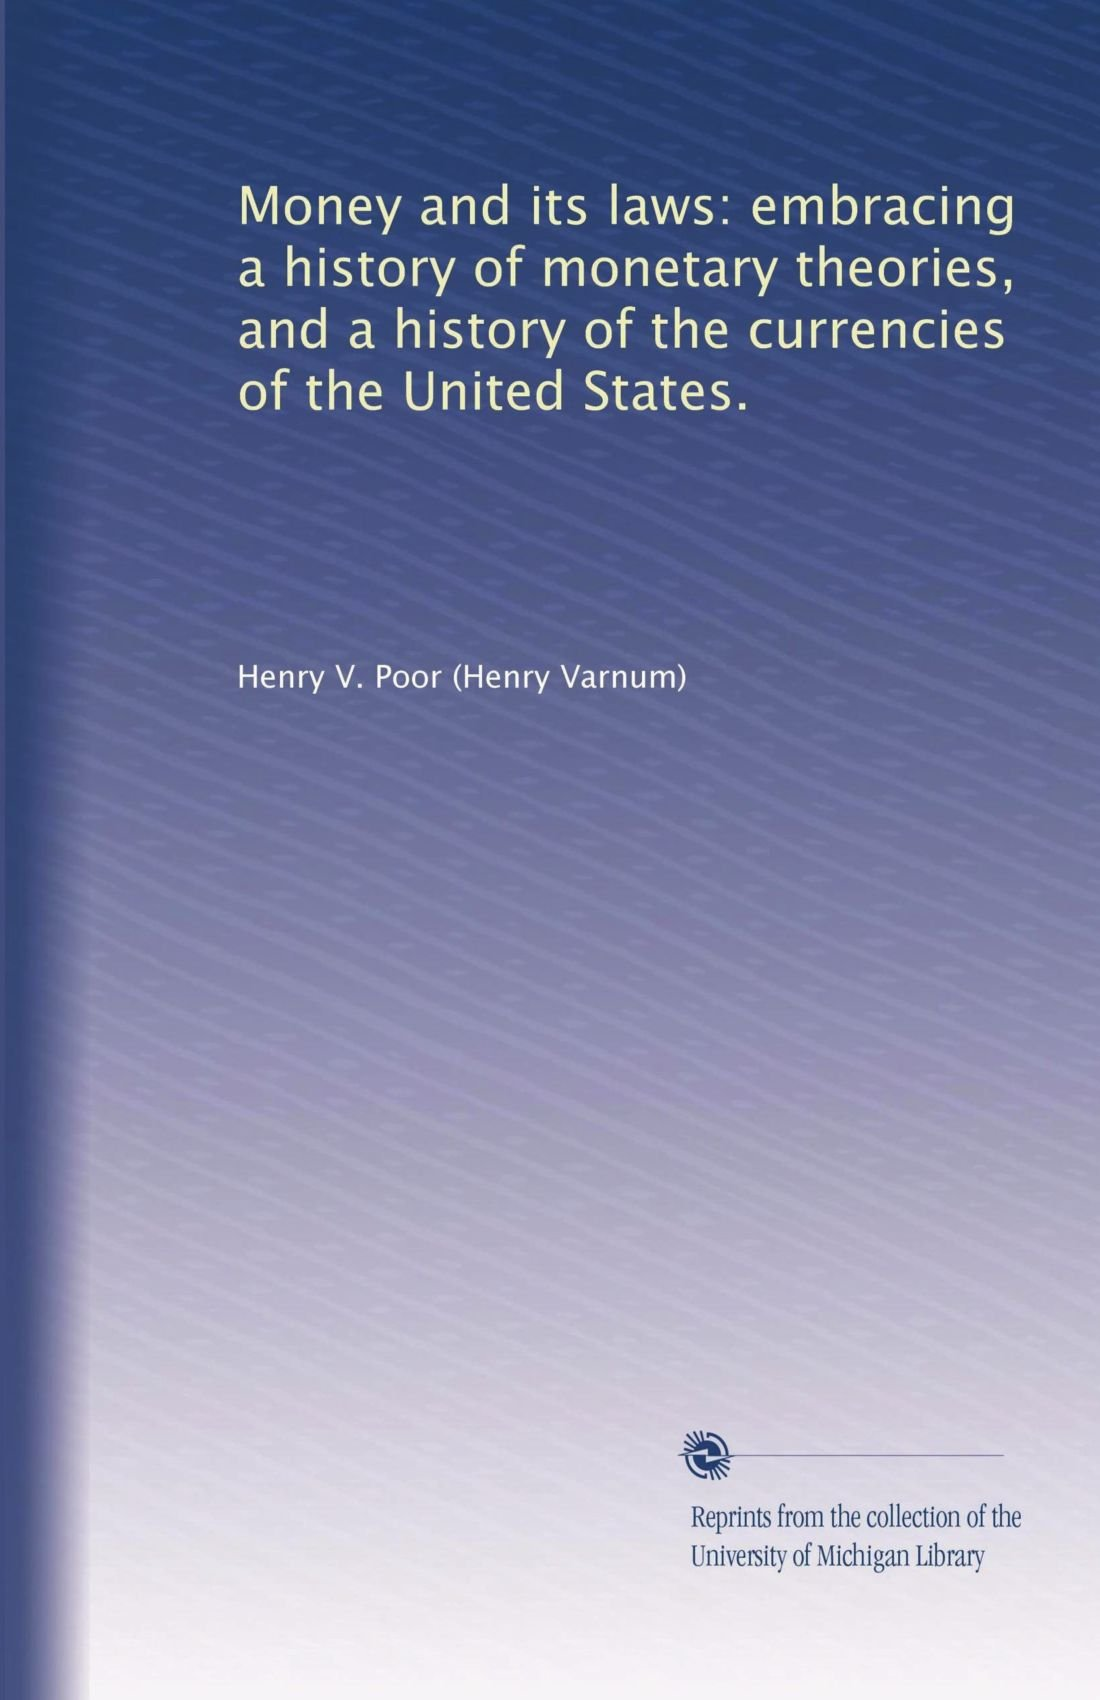 Money and its laws: embracing a history of monetary theories, and a history of the currencies of the United States. pdf epub